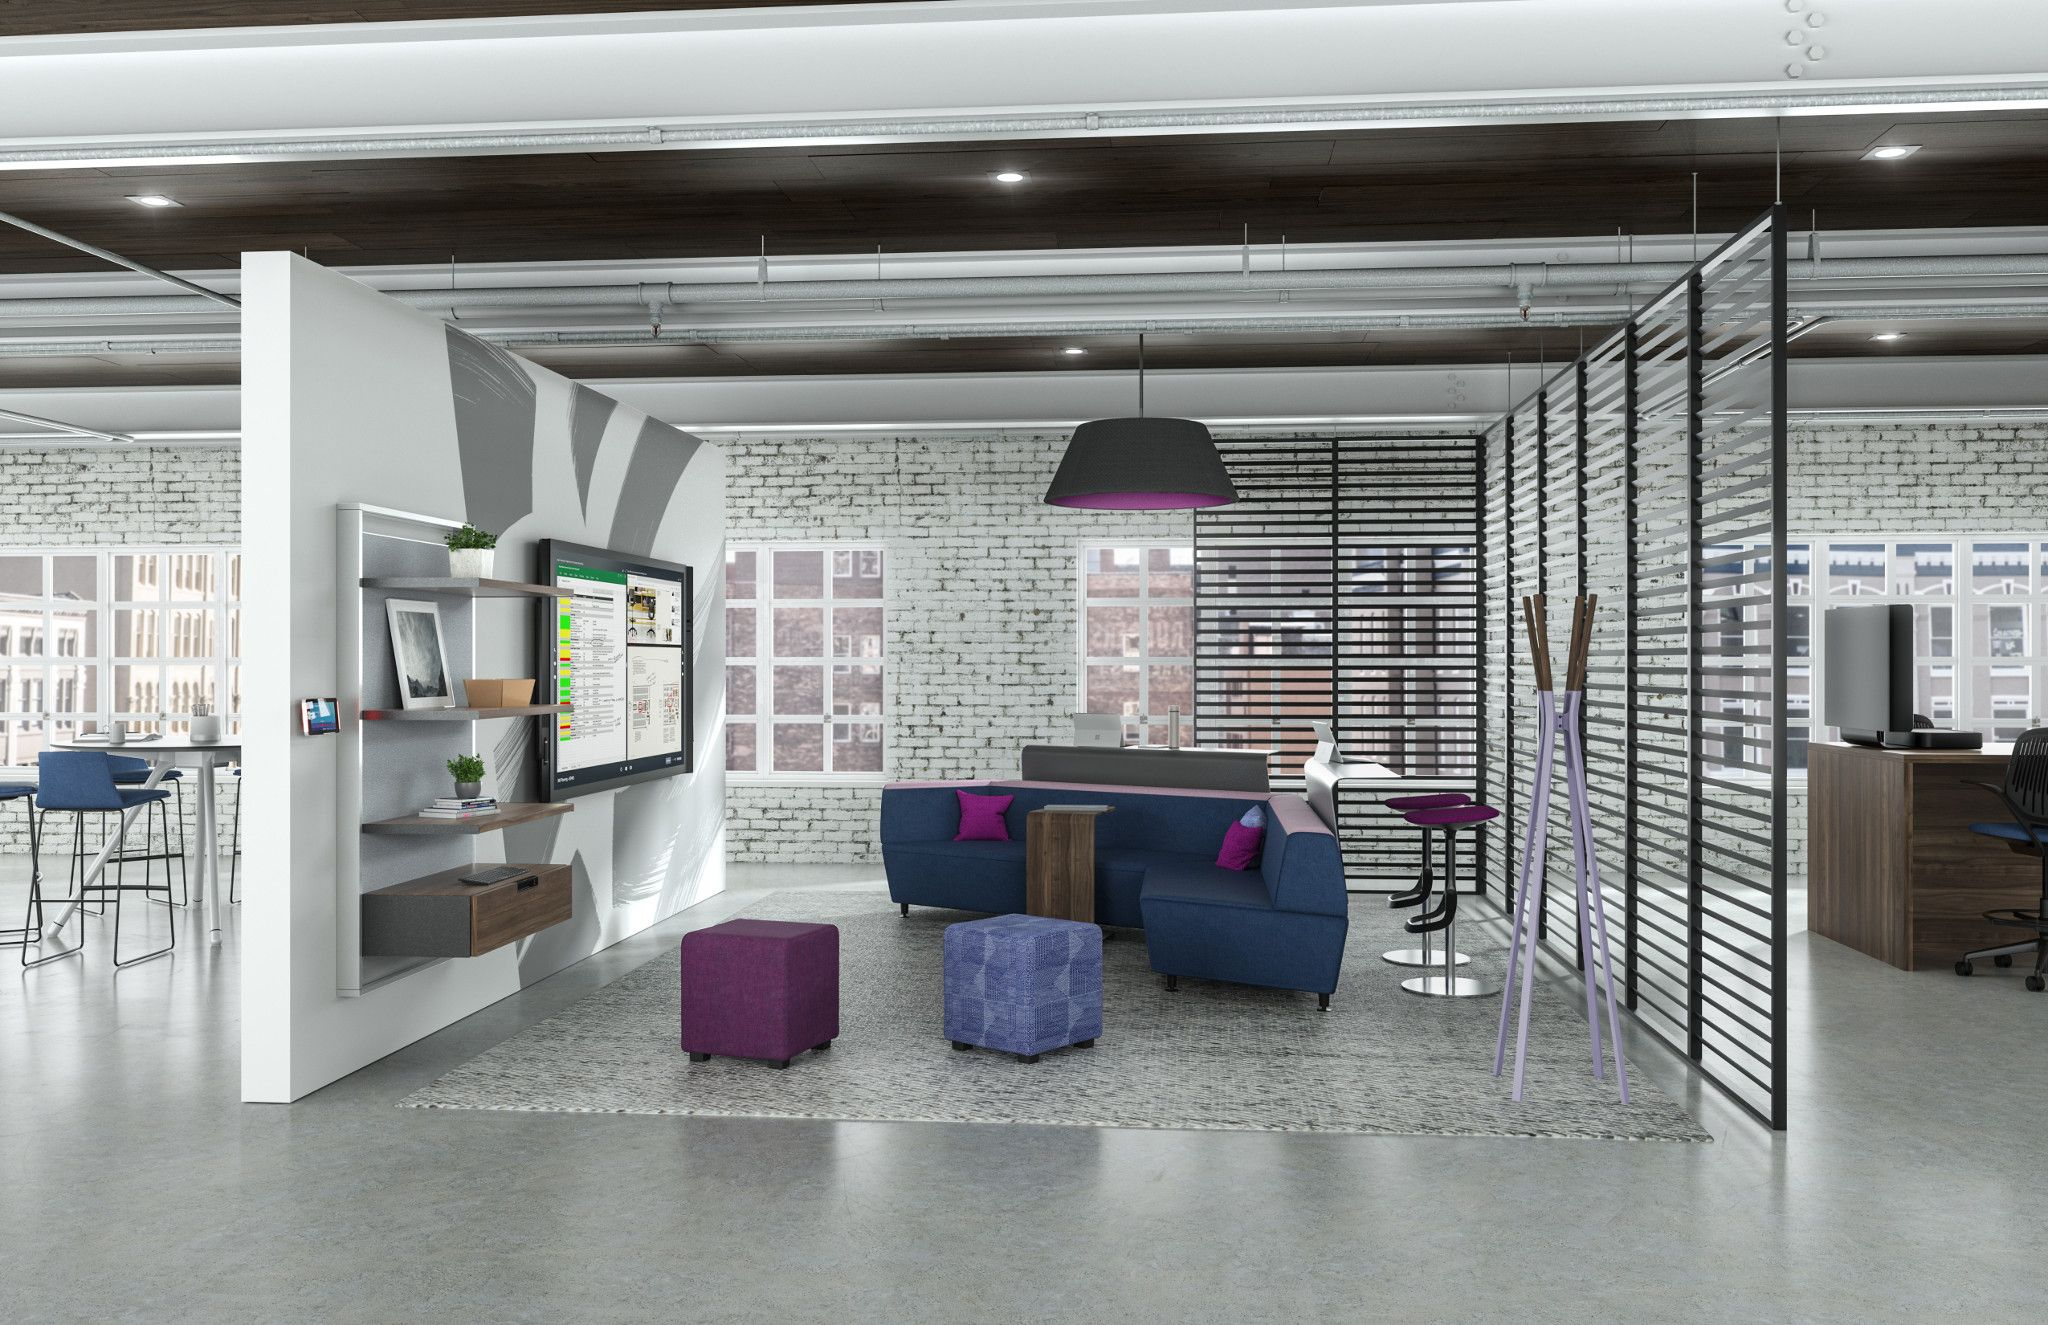 Workplace, Collaboration, Spaces, Creative, Office Workspace